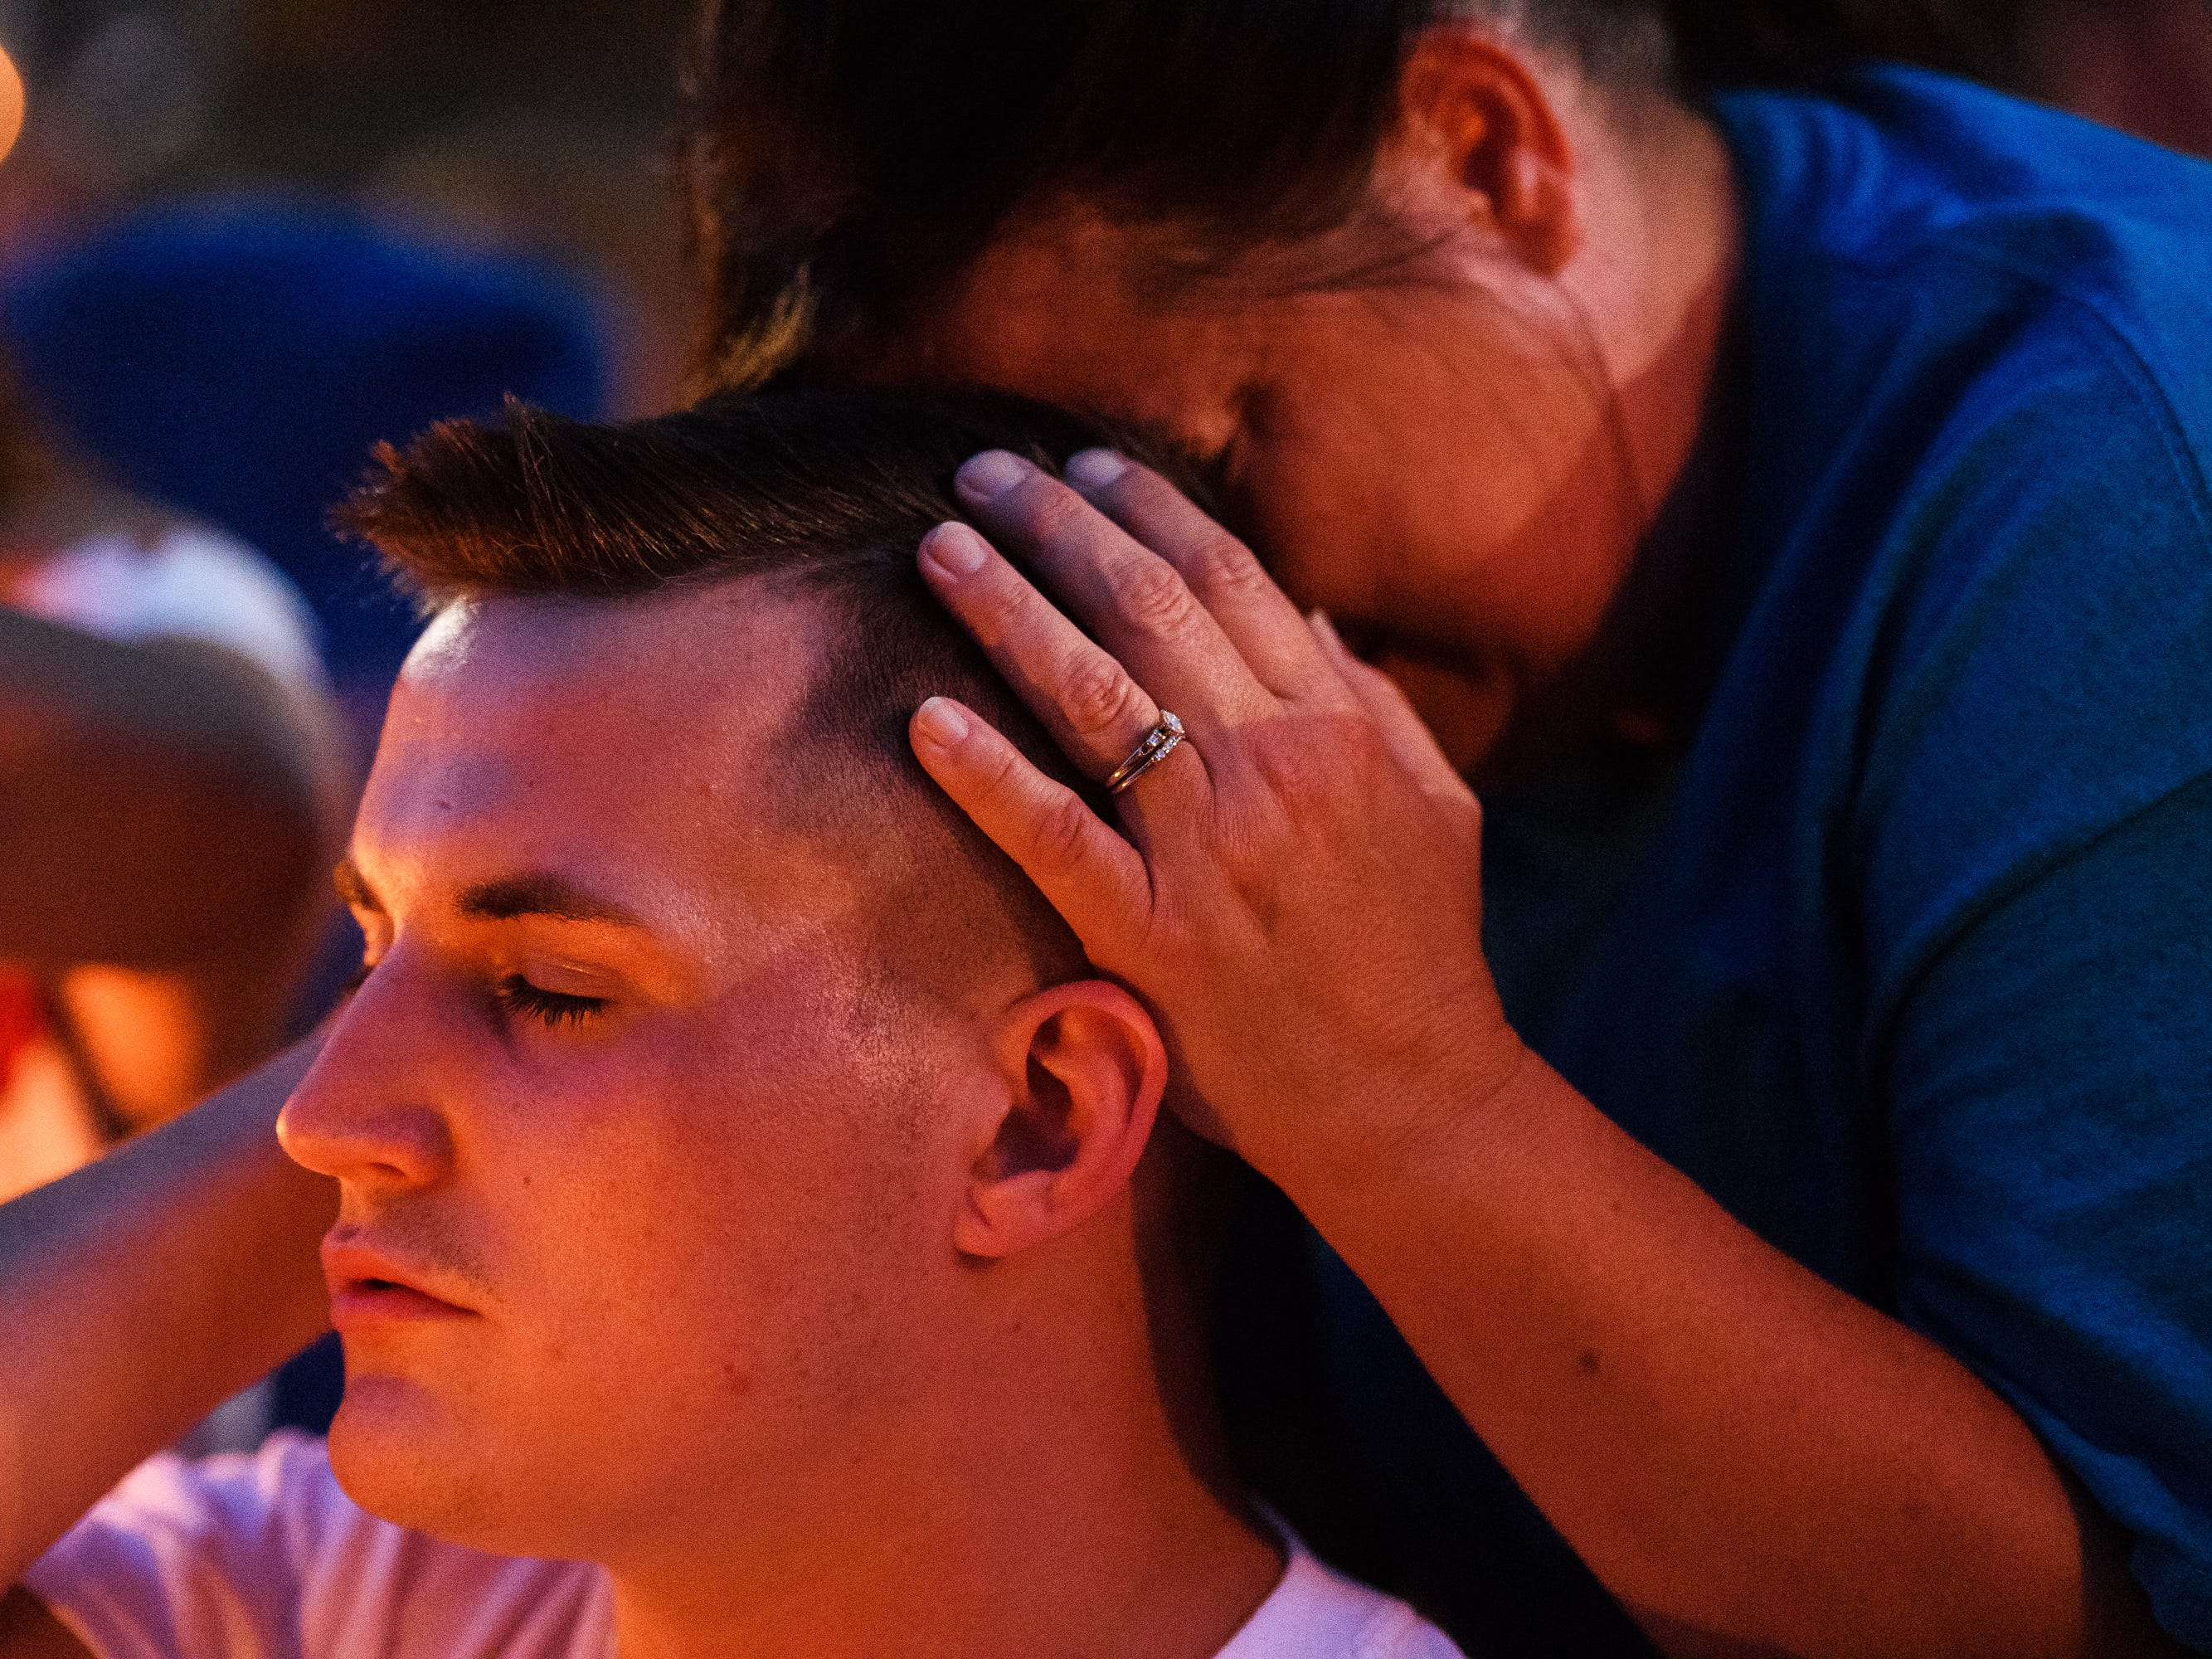 Kathy Bowling holds her son Jacob Johns during a candlelight vigil for her other son, Jared, at Simpsonville City Park on Sunday, Sept. 23, 2018.